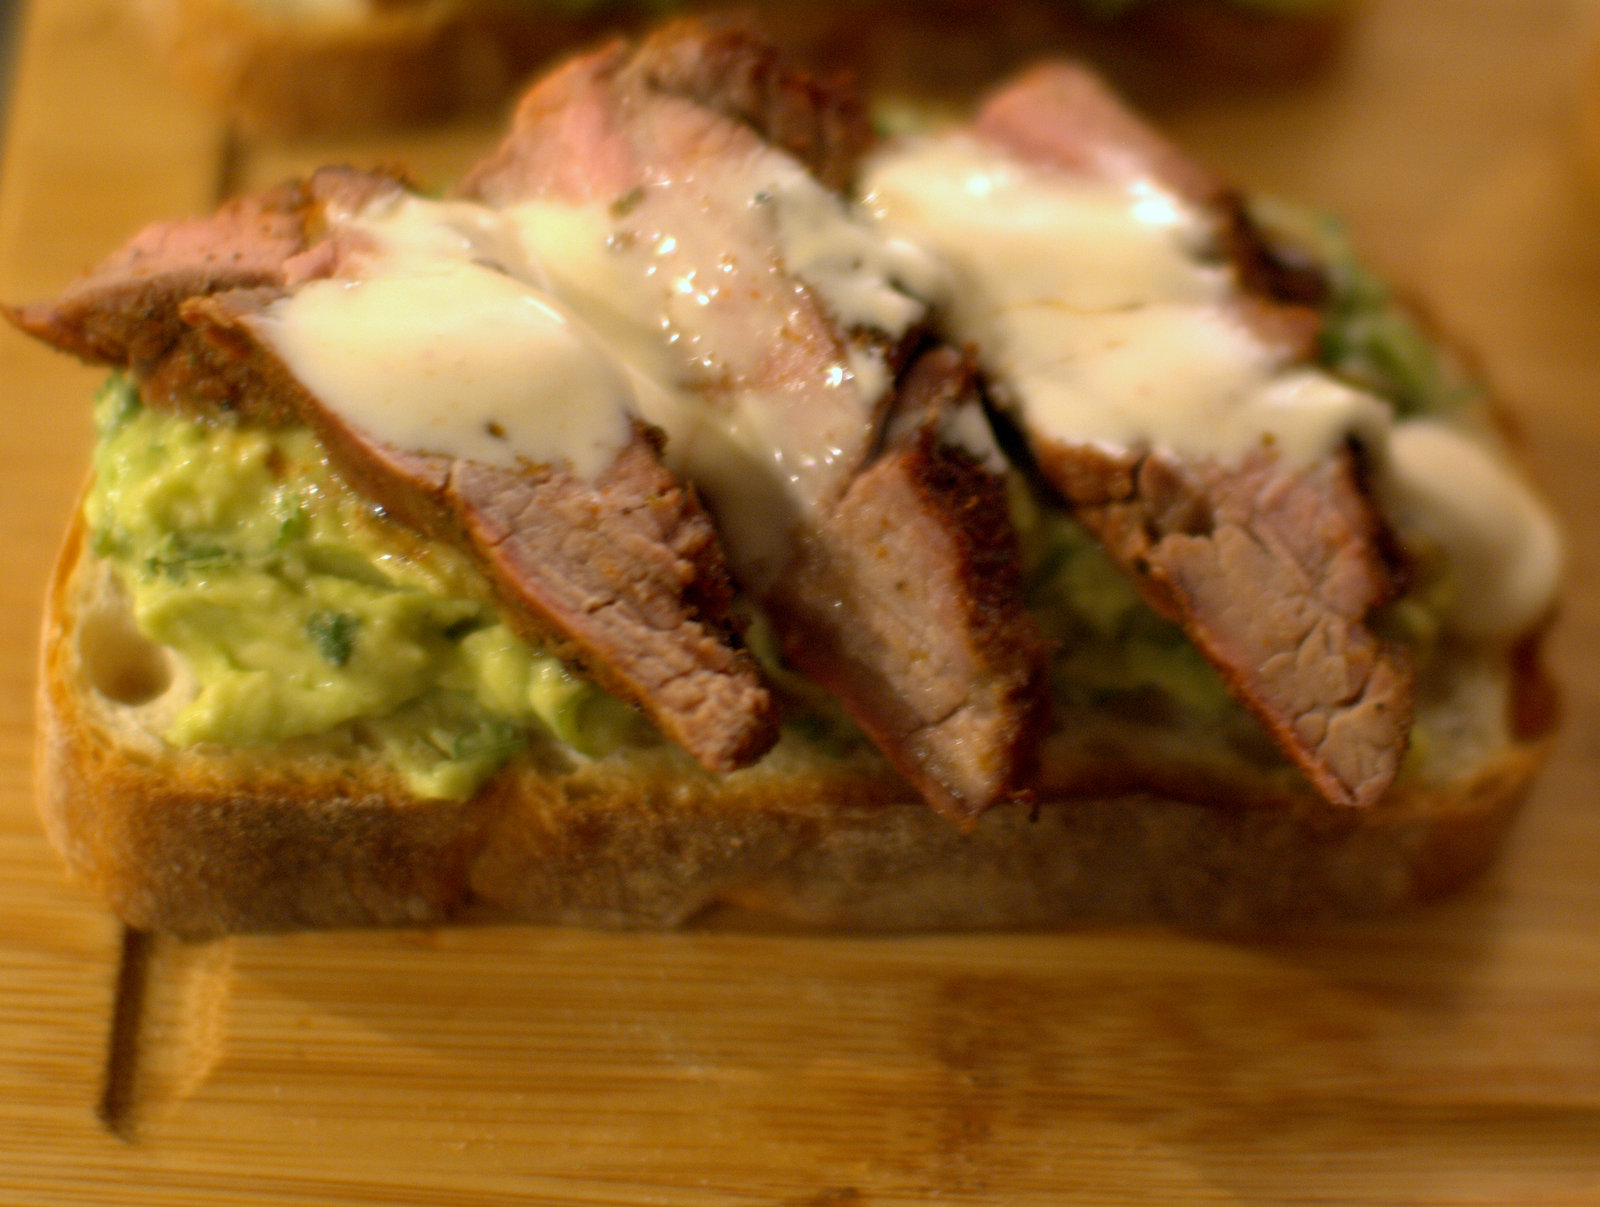 ... : grilled flank steak sandwiches with avocado and hot sauce crema